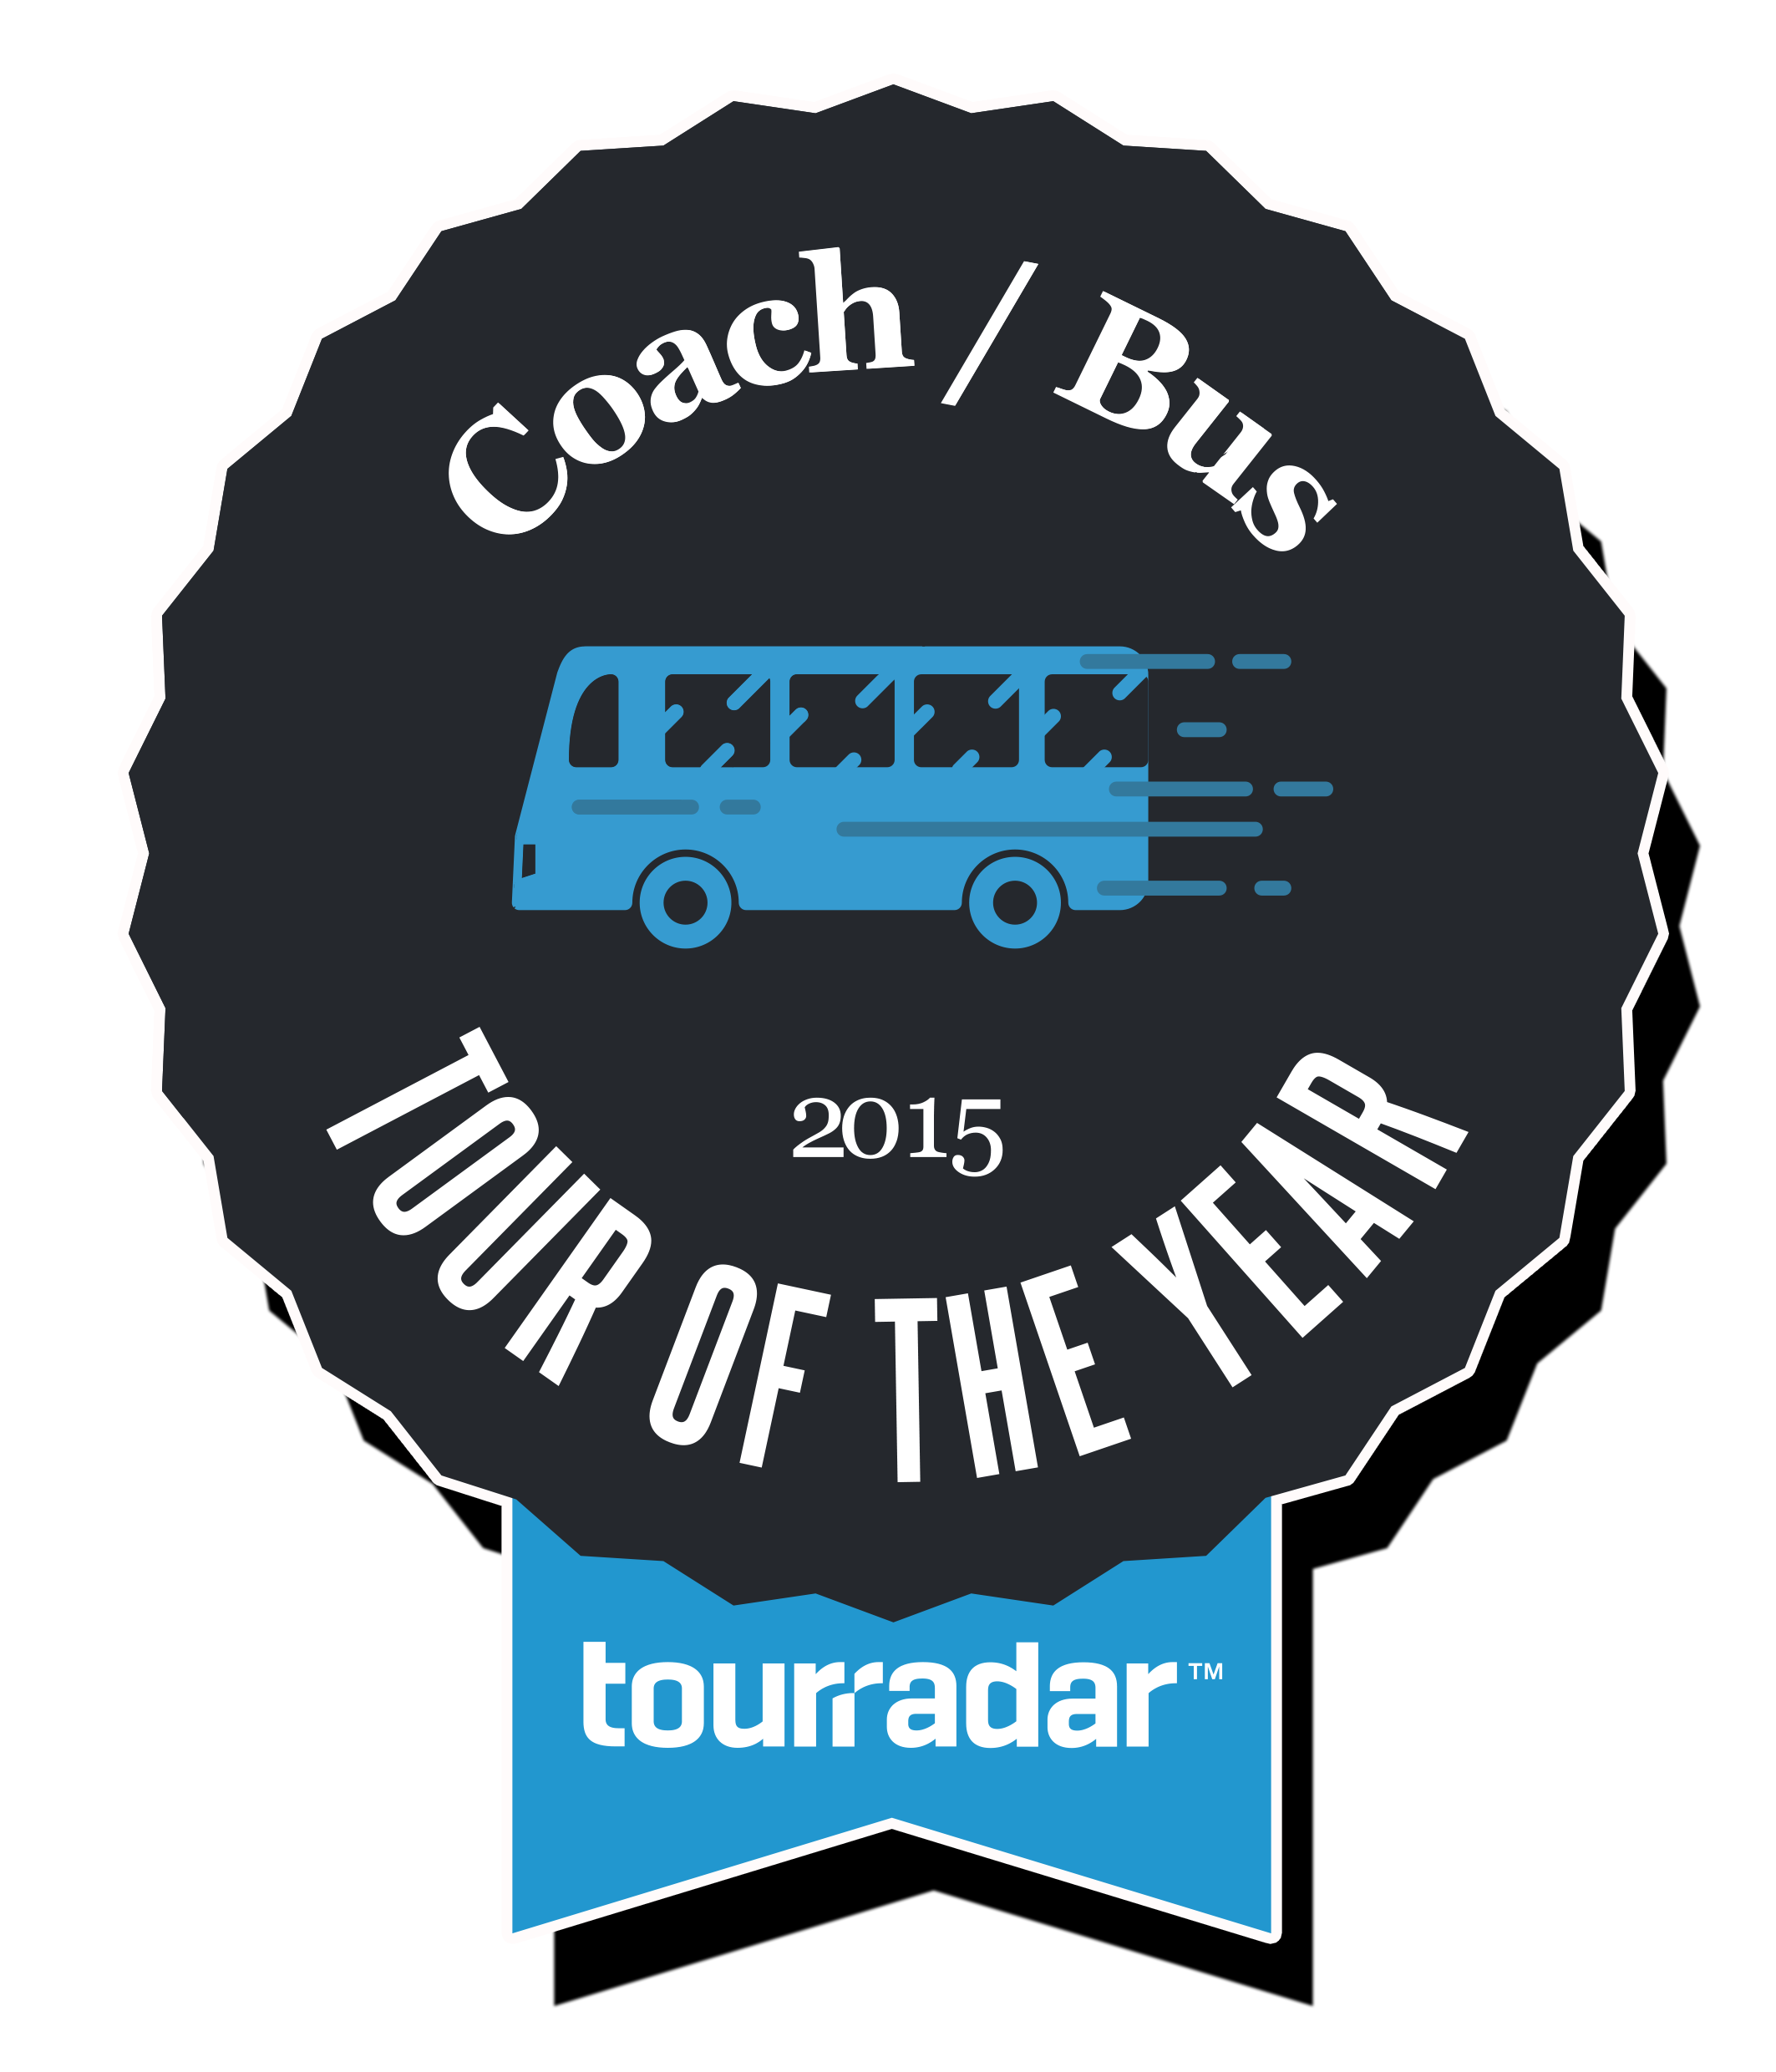 TOTY_Tour of the Year Winner TourRadar Best Bus / Coach tour